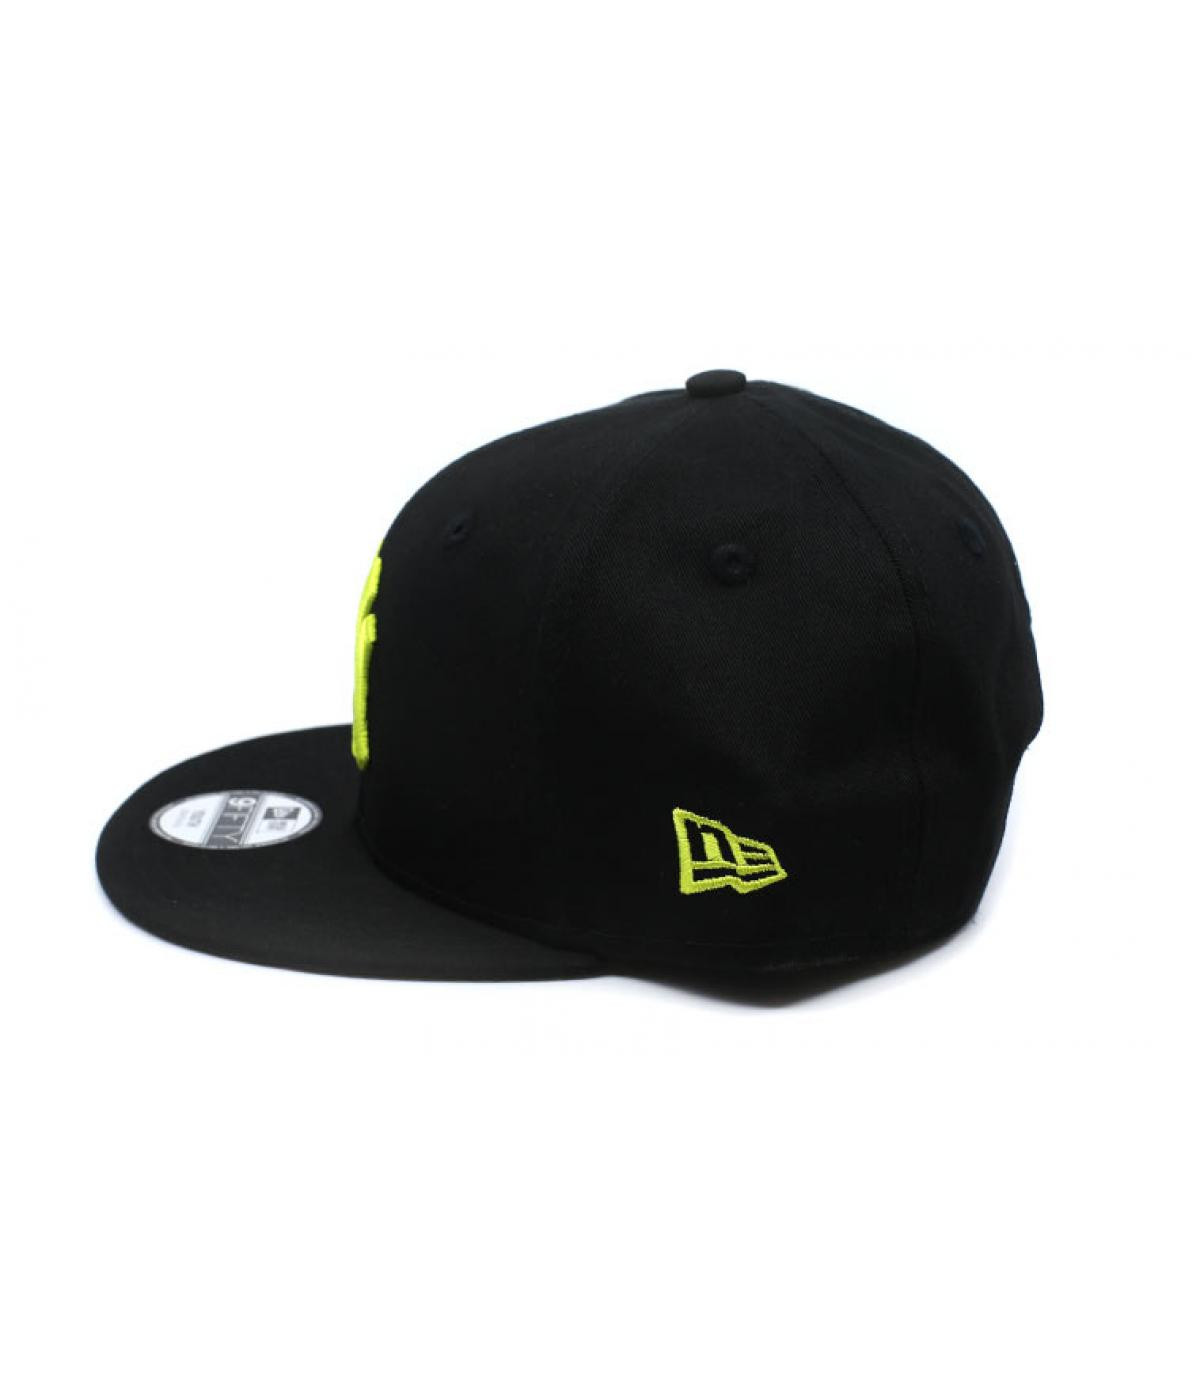 Détails Snapback Kids League Ess NY 9Fifty black cyber yellow - image 4